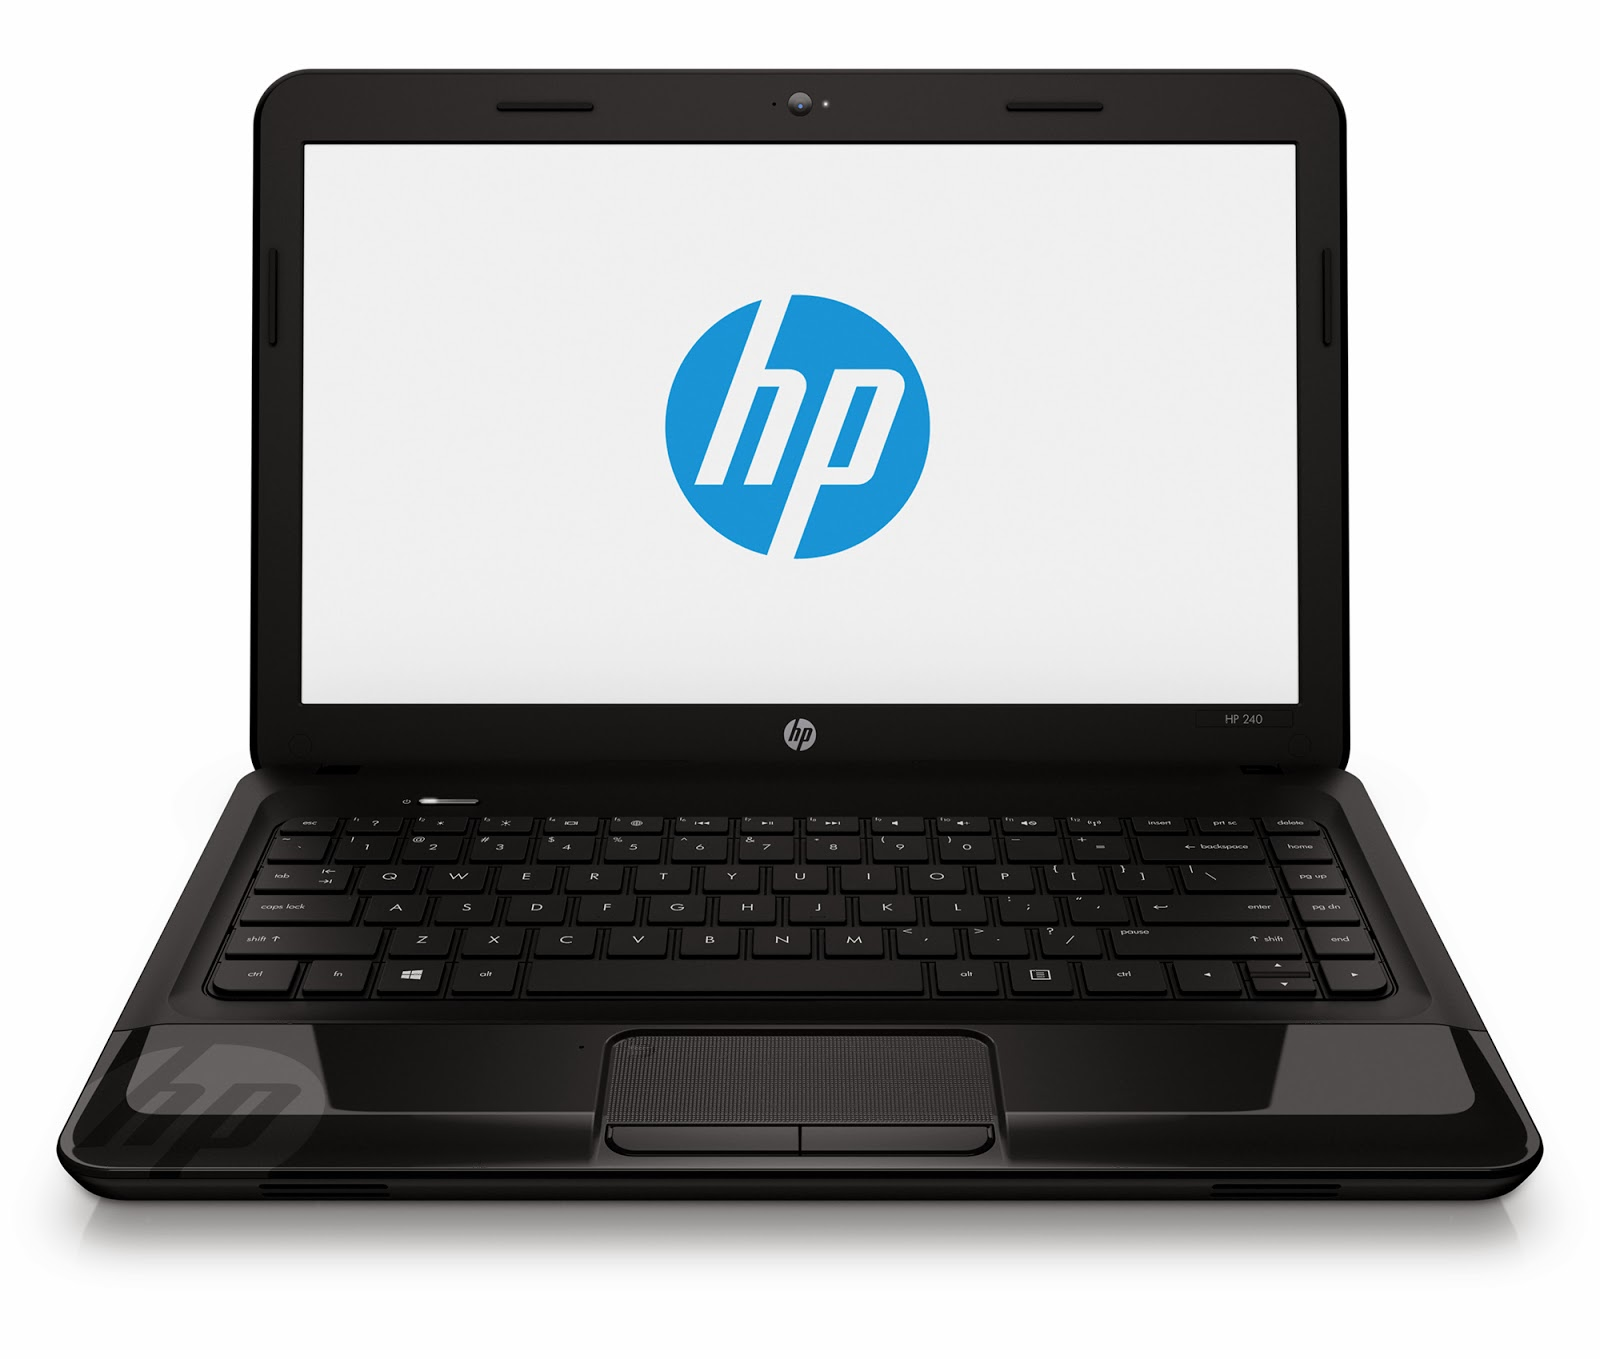 HP 250 G1 Notebook PC Windows 7 32-bit ~ laptop computers ...